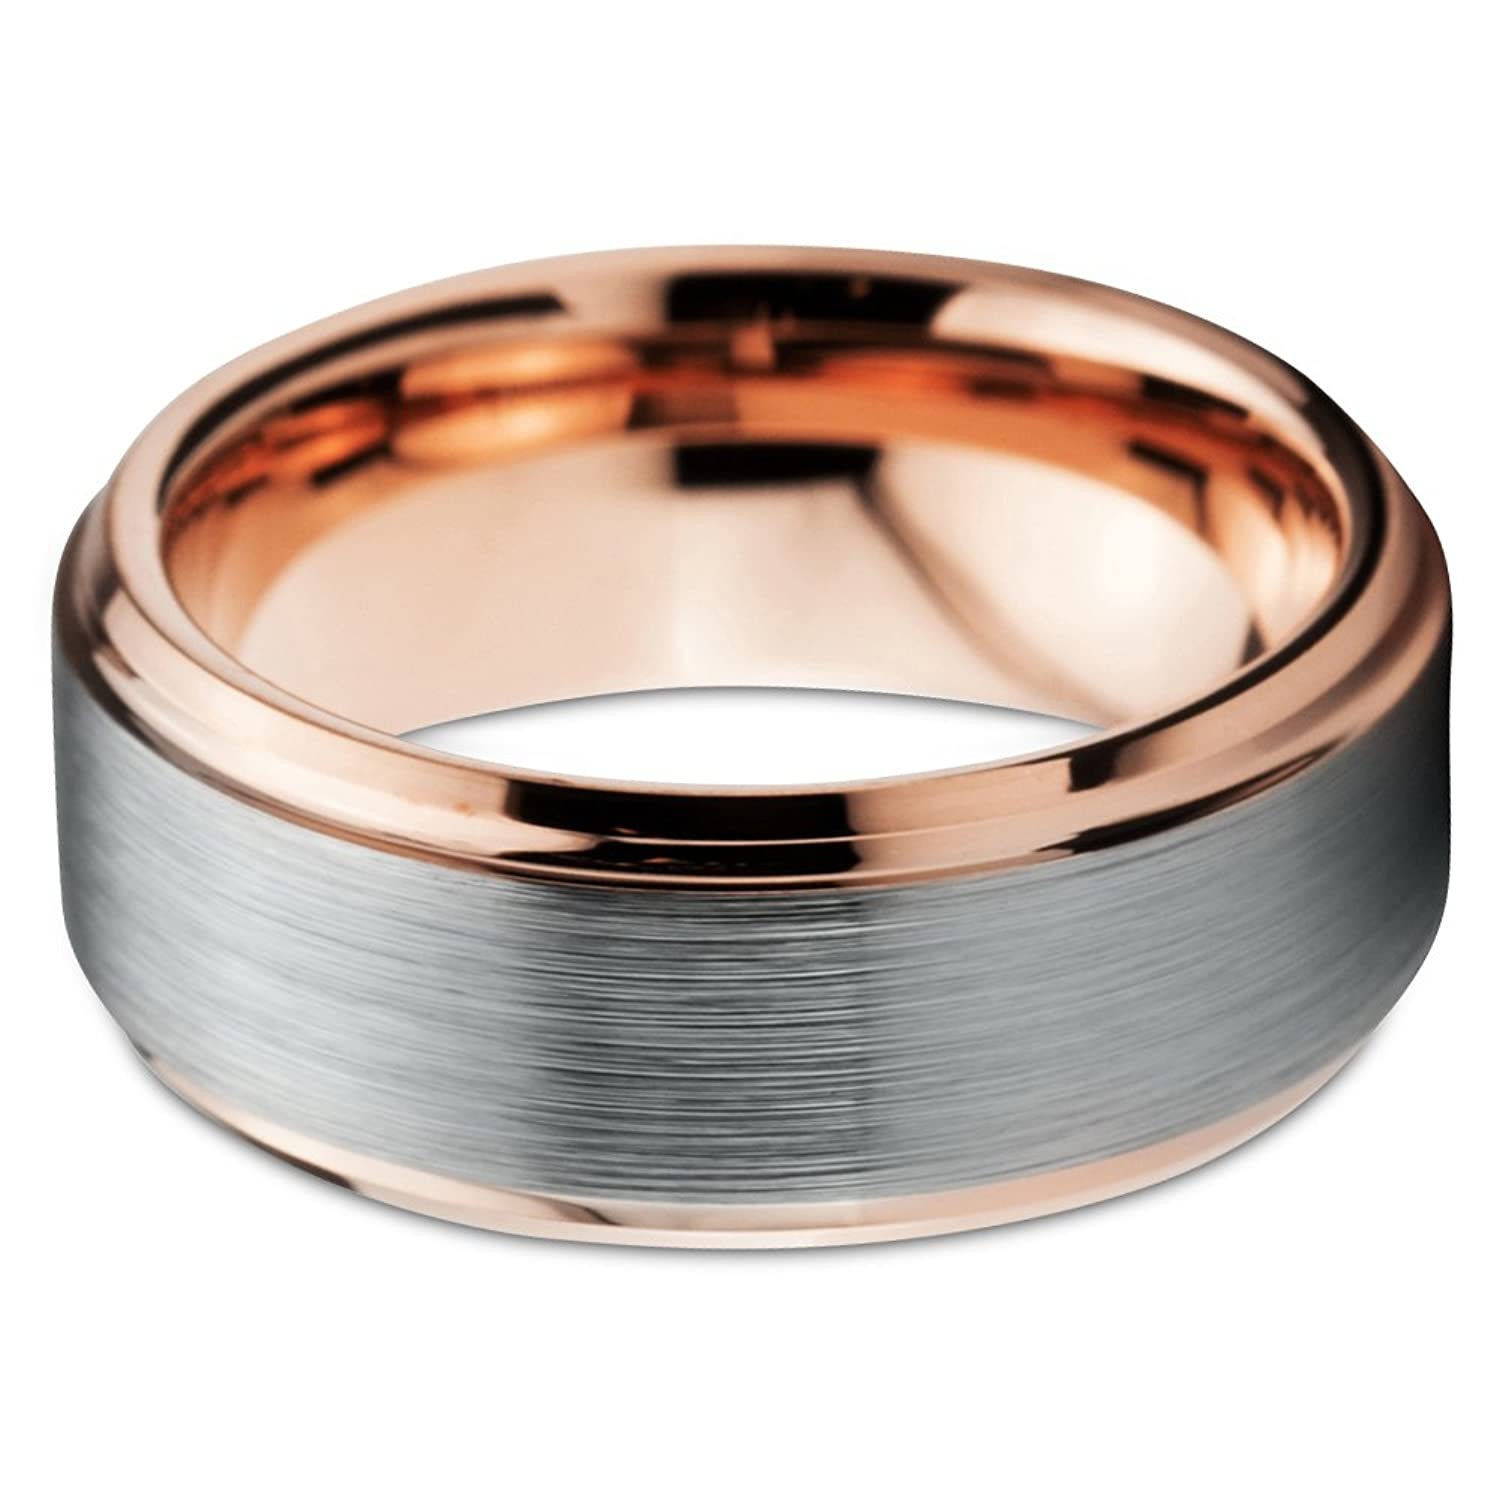 tungsten wedding band ring 8mm for men women comfort fit 18k rose